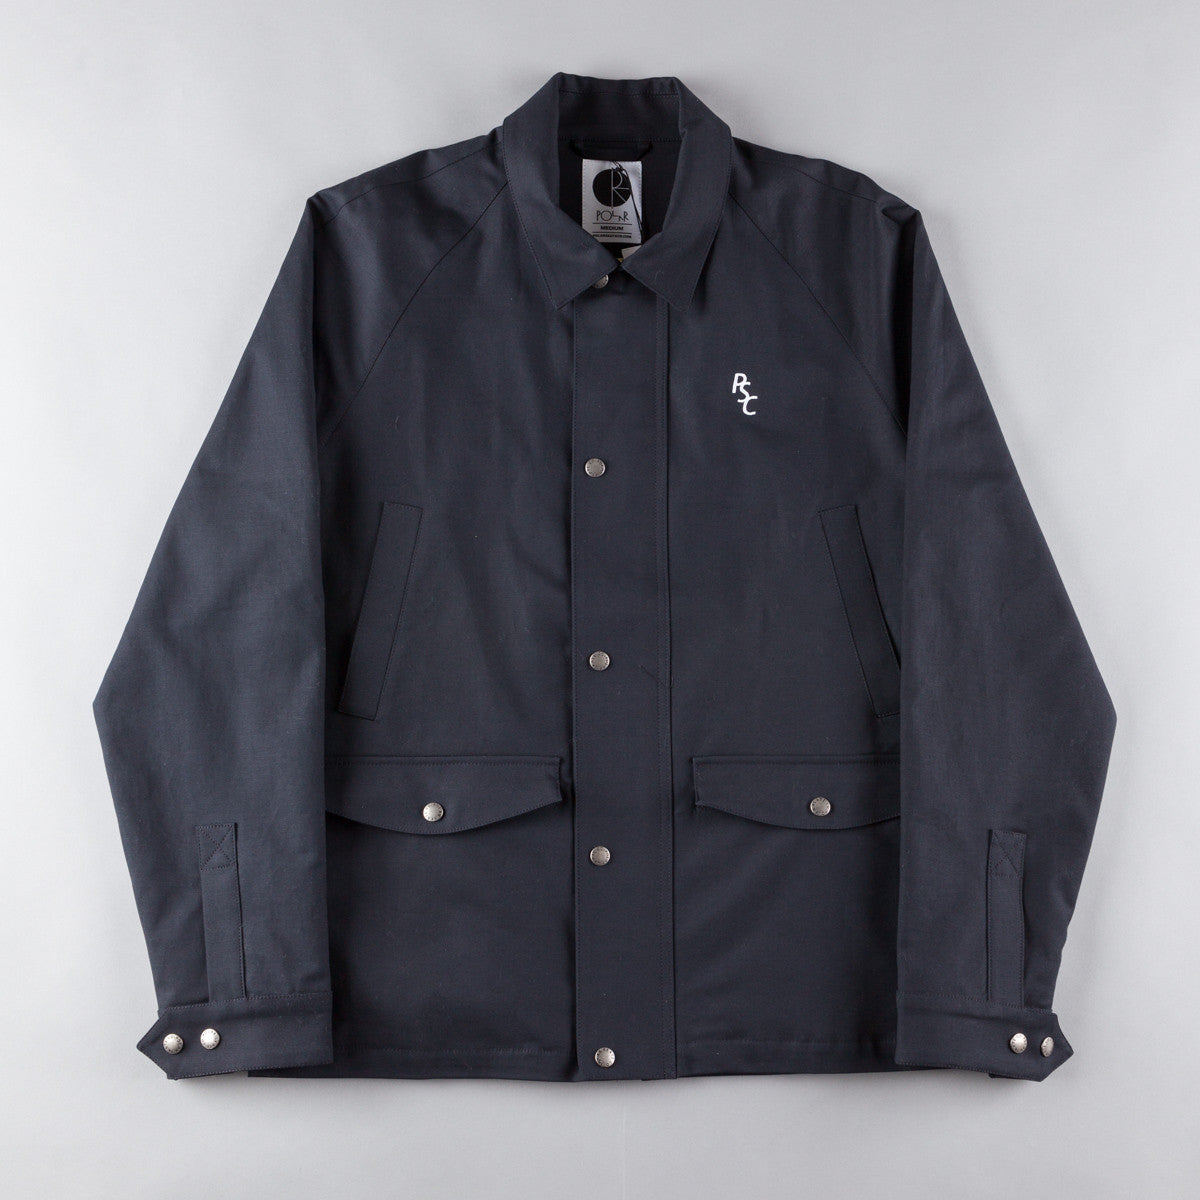 Polar Nautical Jacket